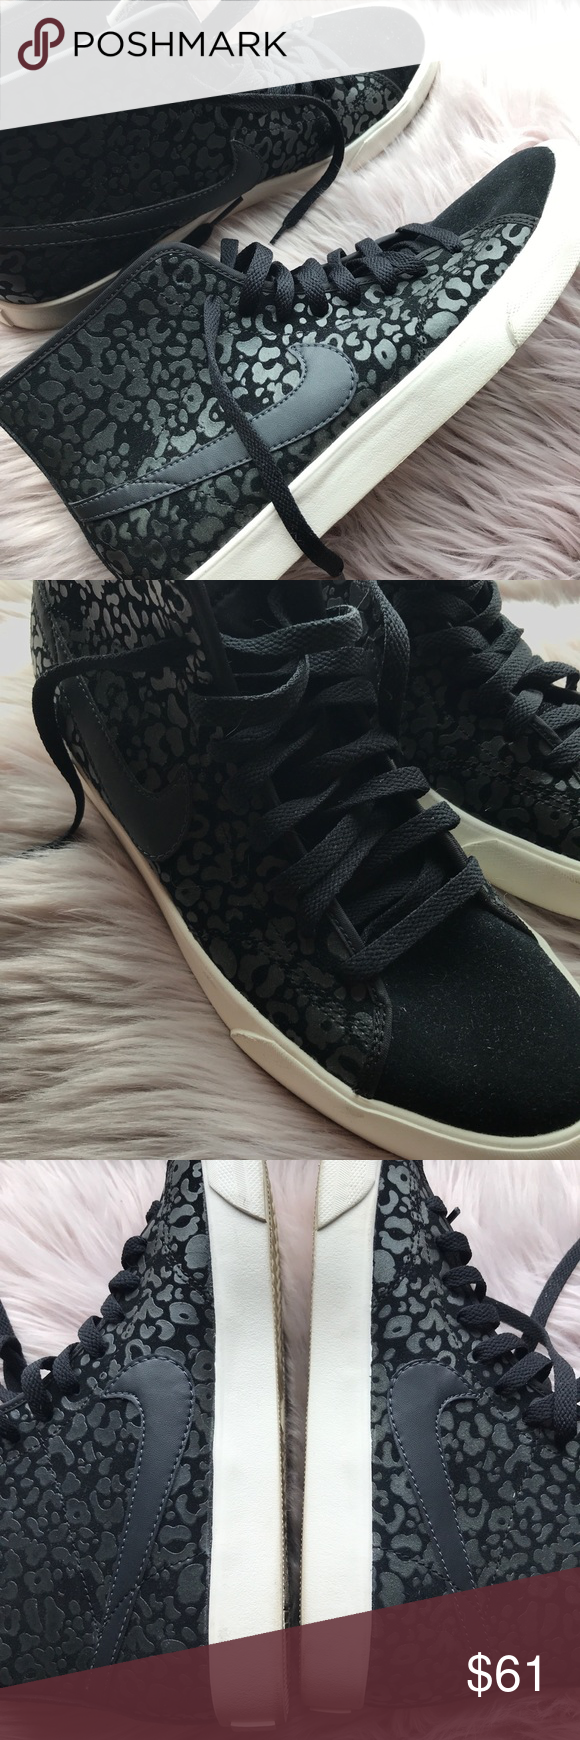 7bf1d2e898761 Nike Primo Court Leopard Suede High-tops Sneakers Women s Nike leopard  print black high-top trainers. Size 9. Used with wear to soles. Nike Shoes  Sneakers